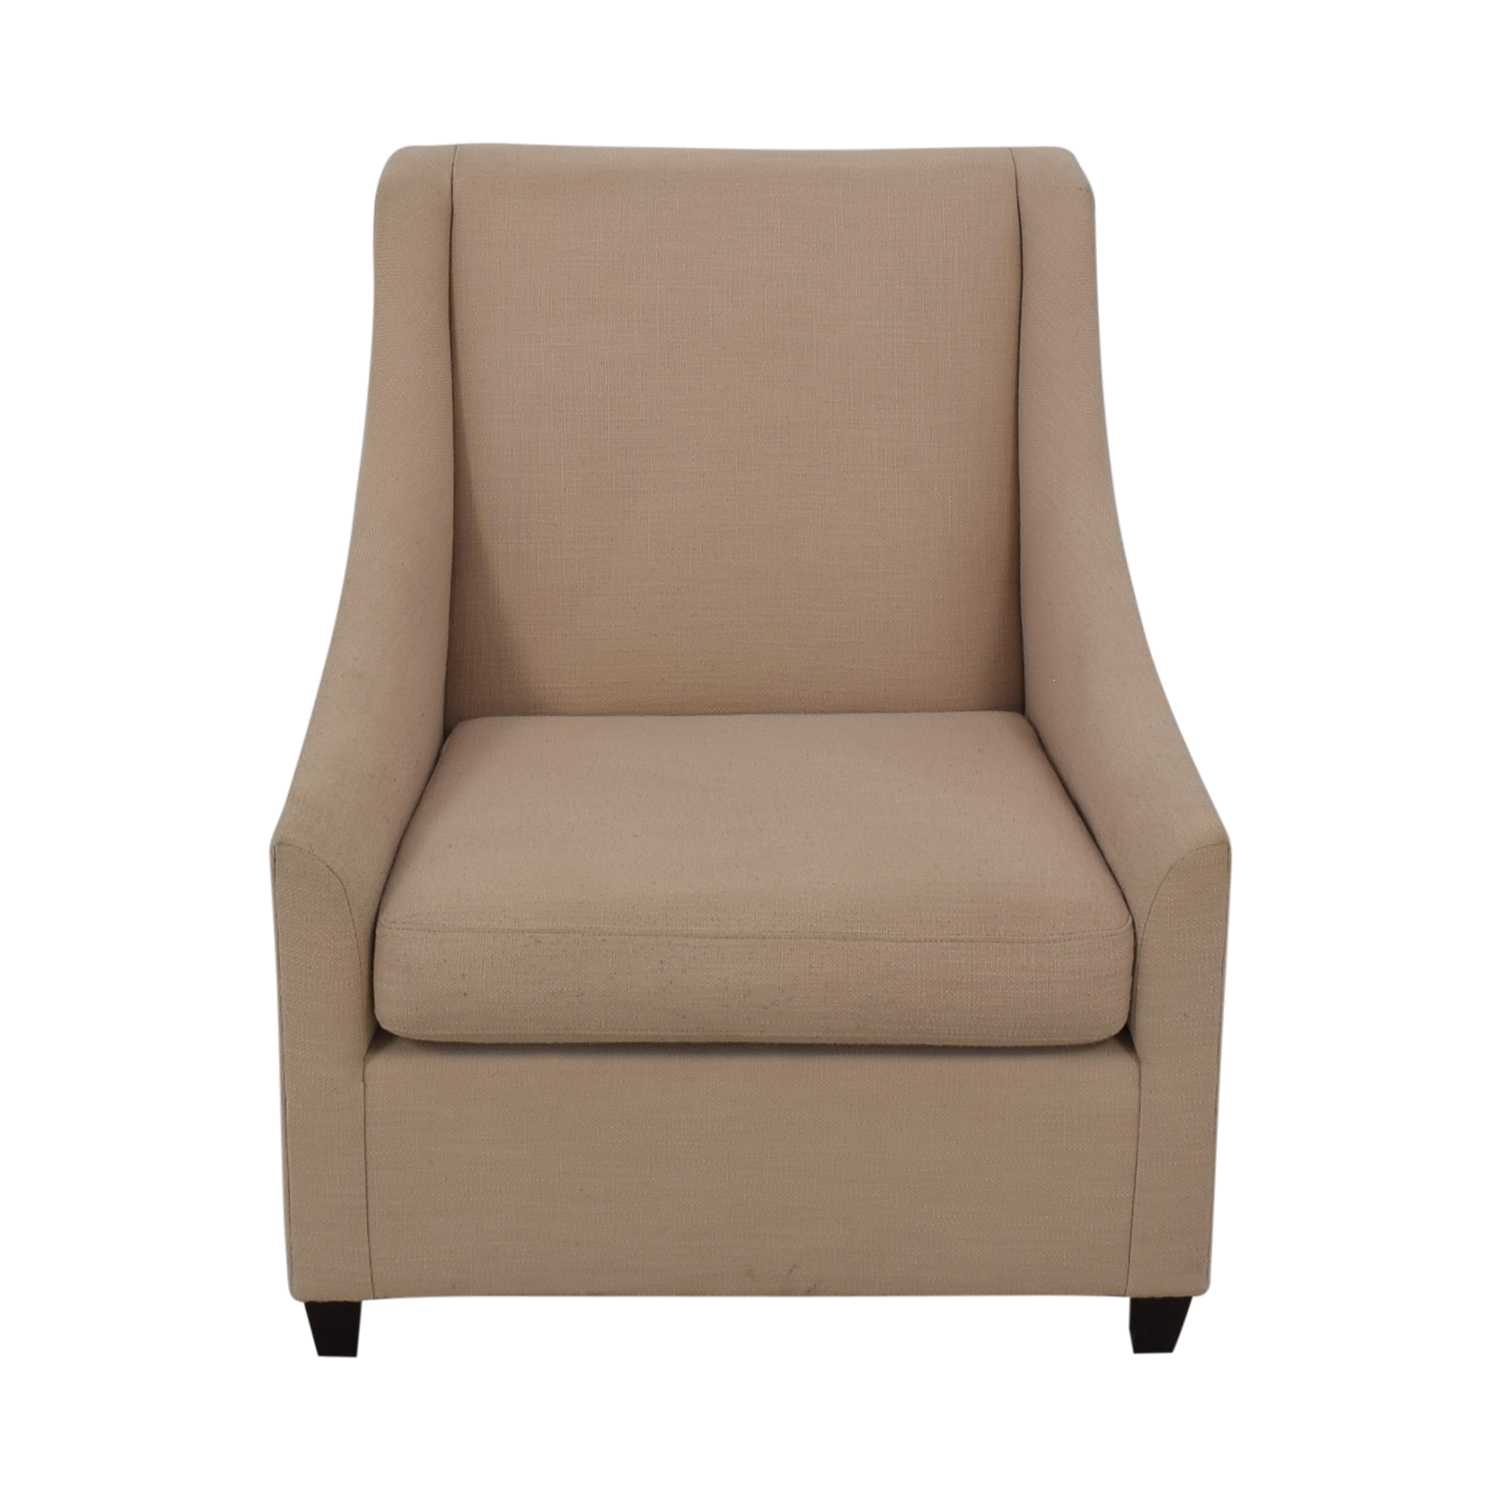 buy West Elm Sweep Beige Arm Chair West Elm Accent Chairs